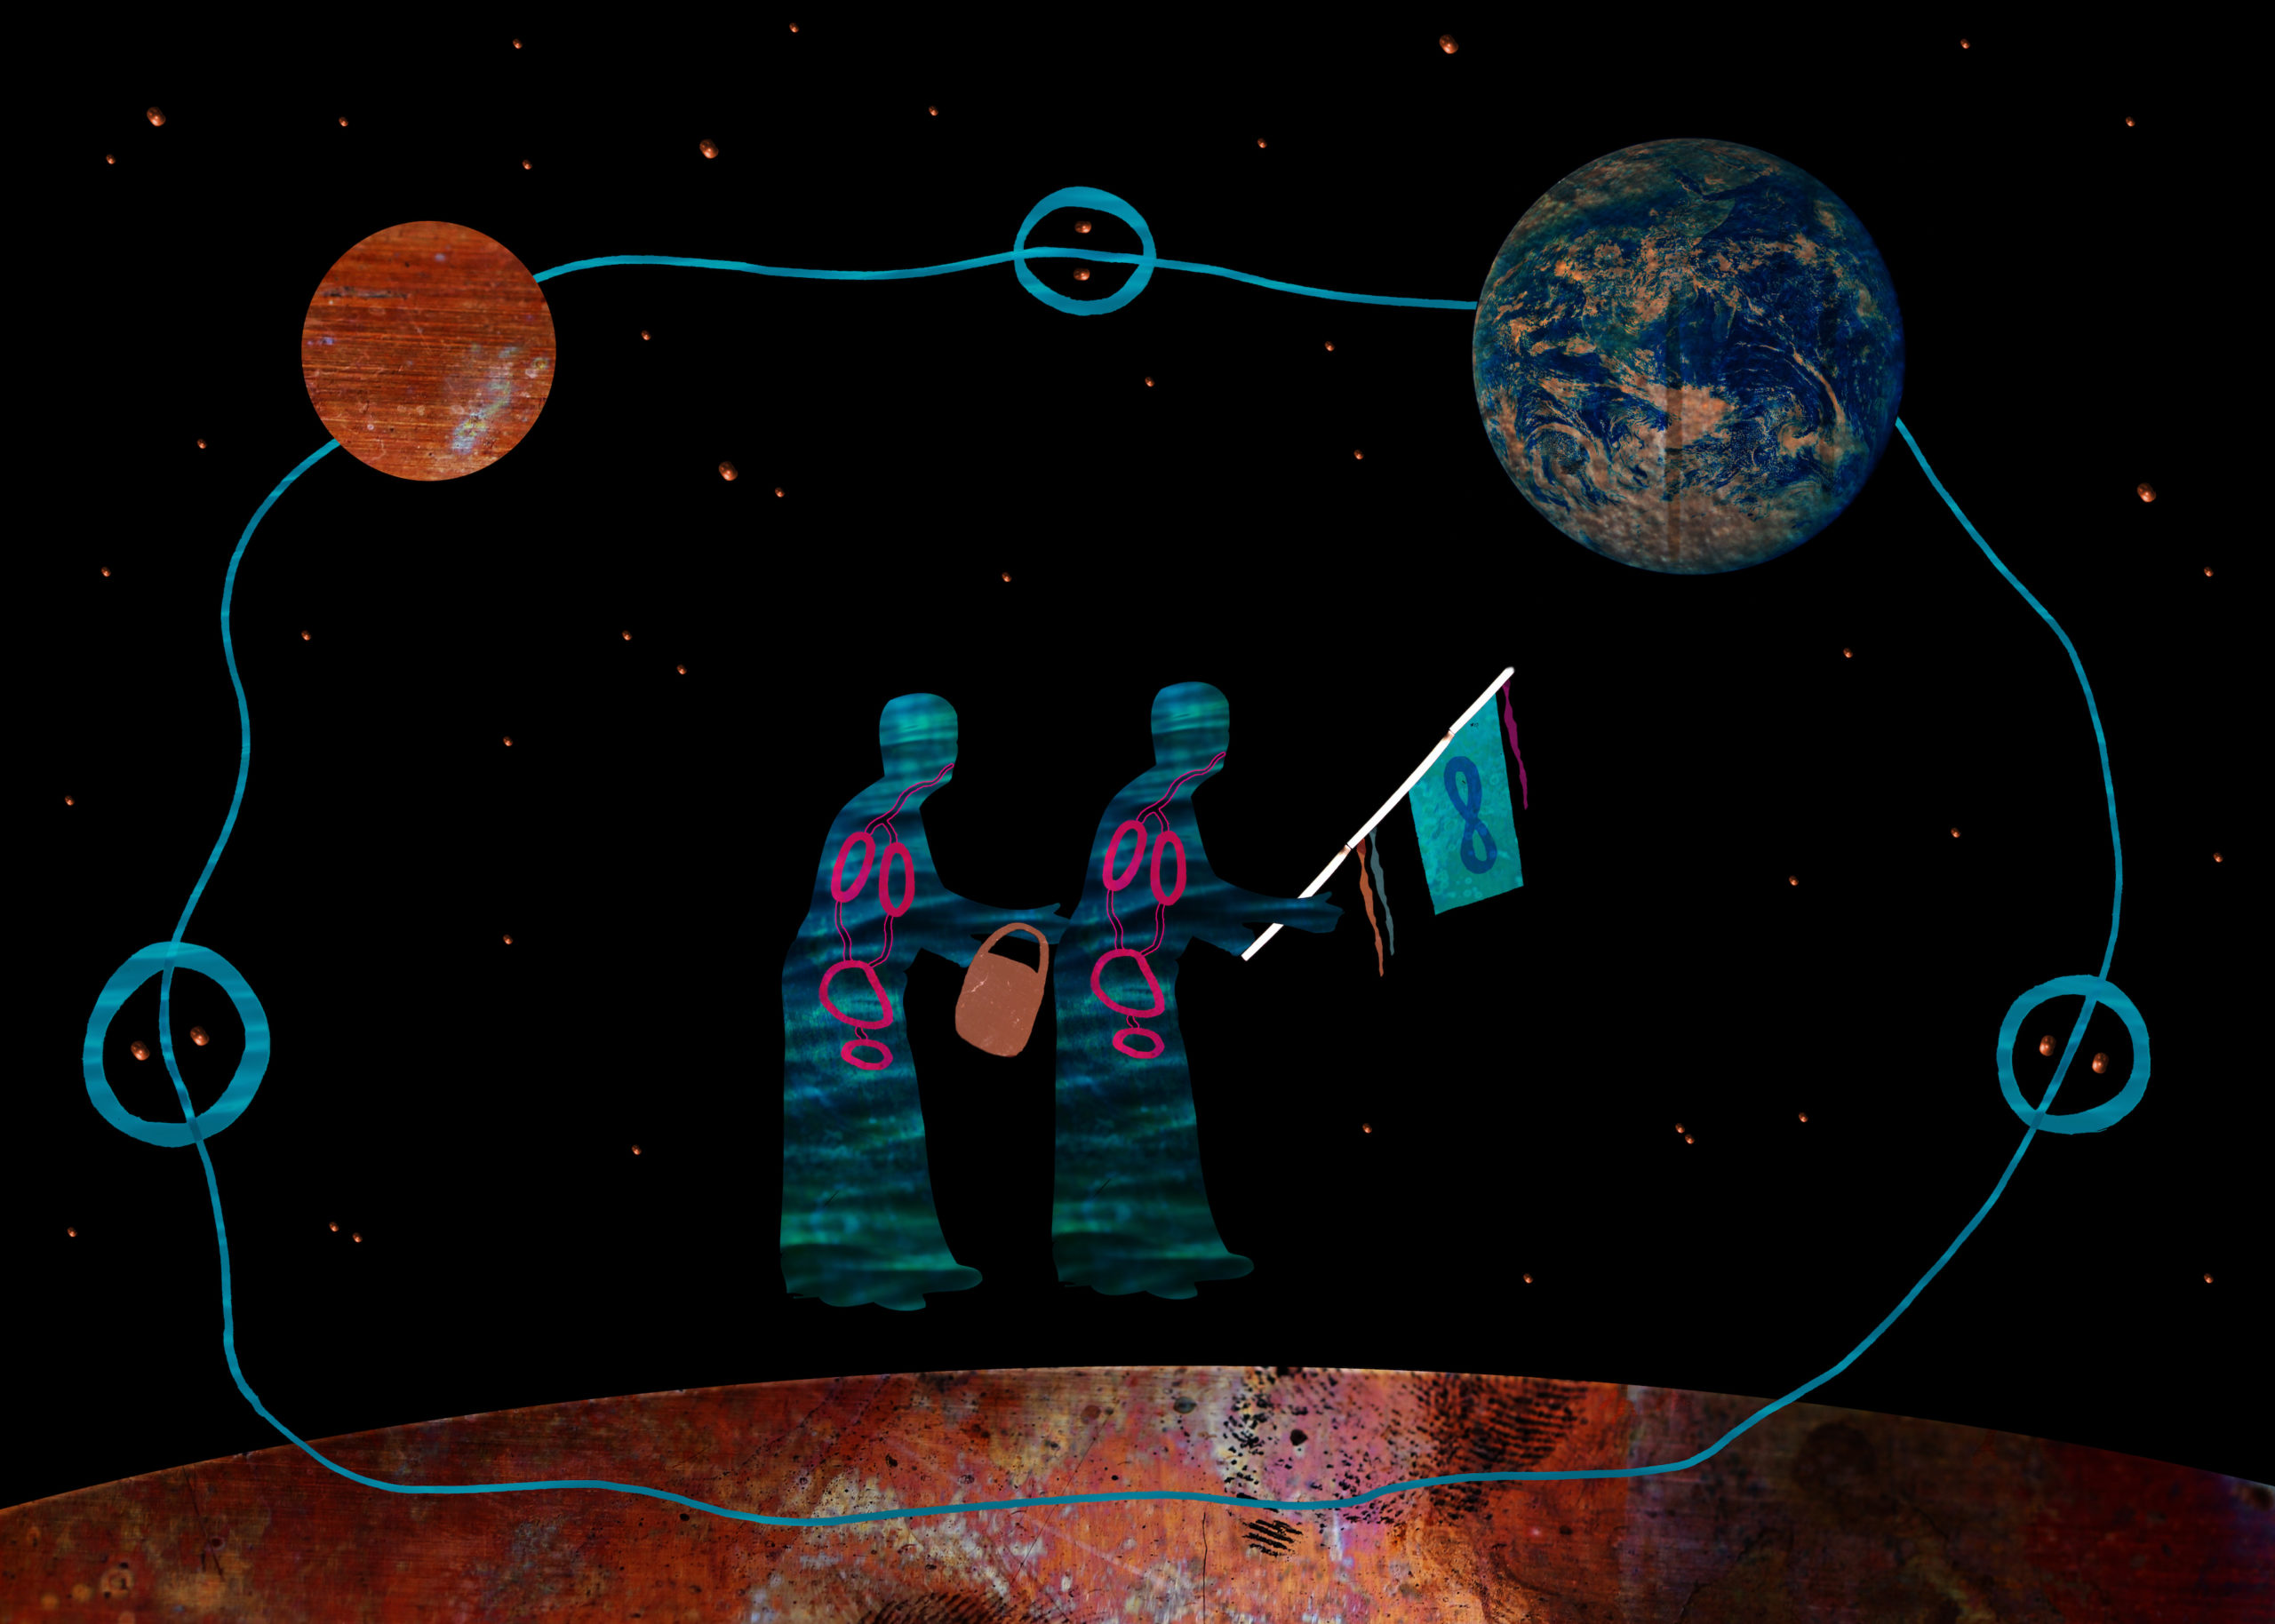 Two figures, shaded by colorful hues of blue, green and pink, are seen floating in a cosmos linked together by a water-bearing object, one figure is wielding a flag. From their posture, slightly bent, they would appear to be elderly, ancestral. Around the figures two planets are connected by streams of blue line.